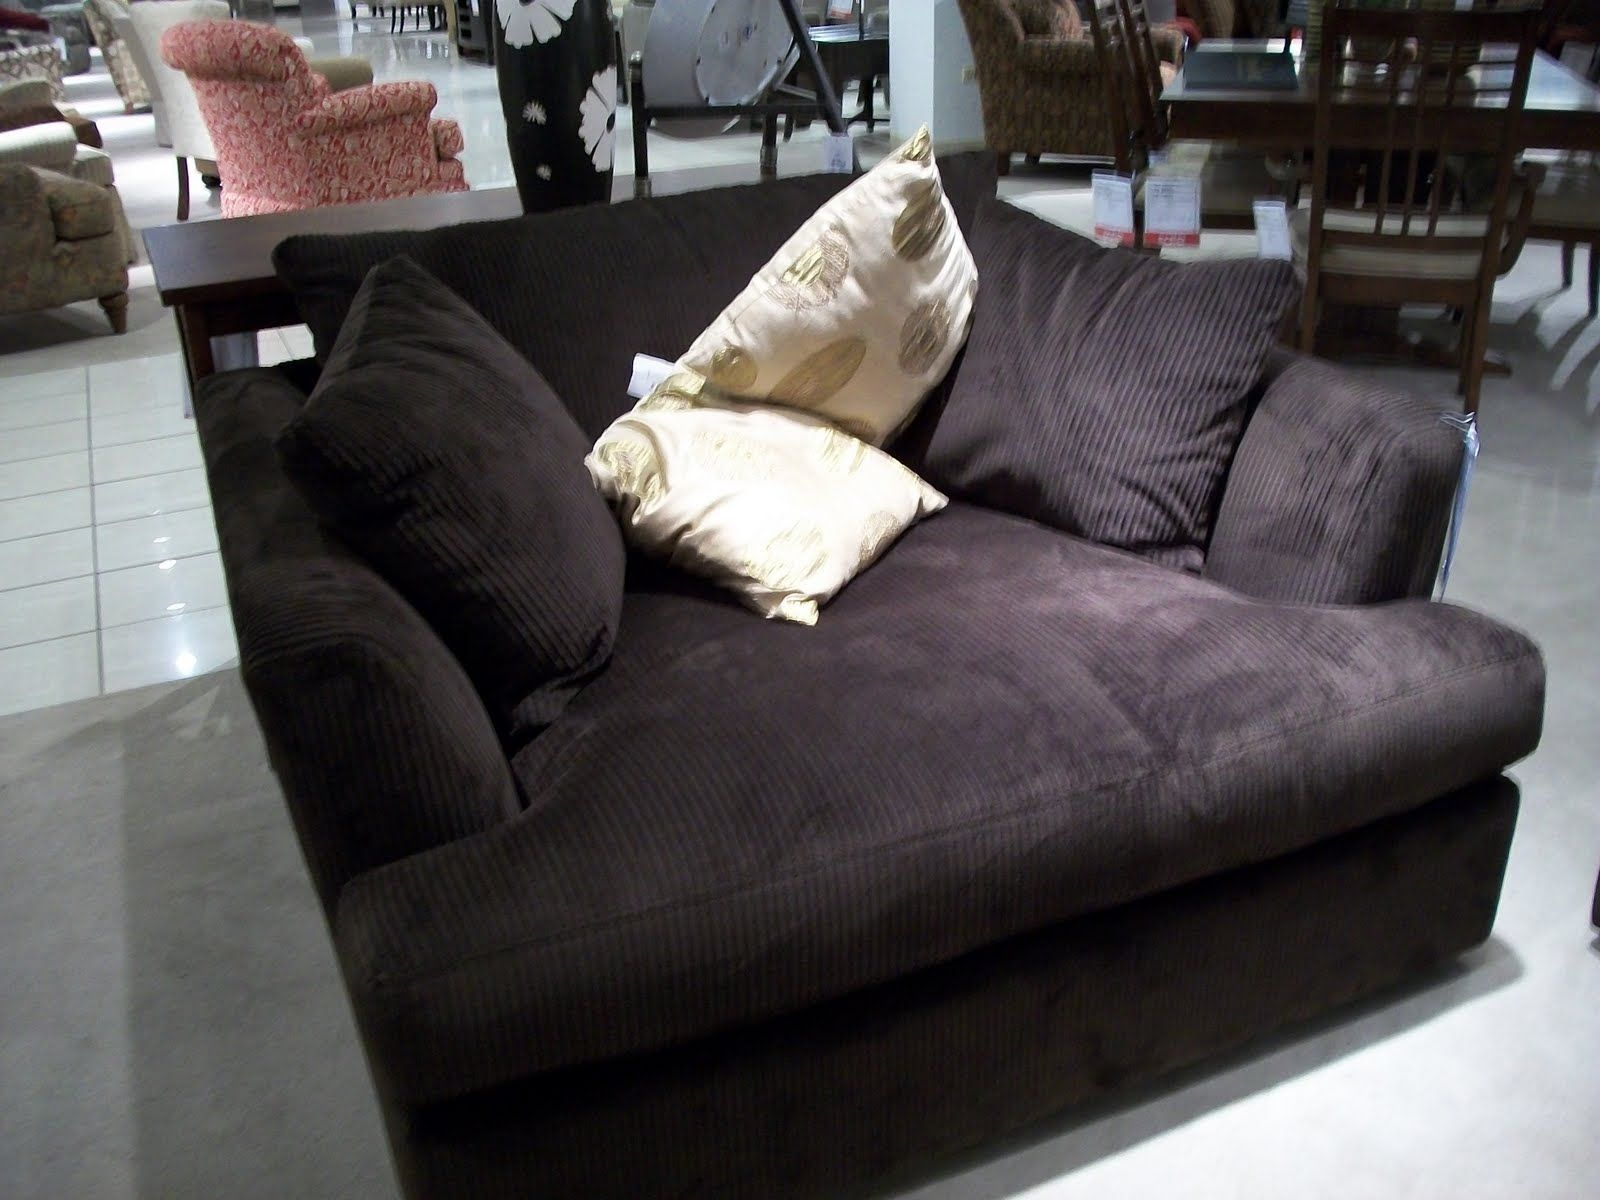 Giant Pillow Chair Big Comfy Oversized Armchair Where You Can Snuggle Up With